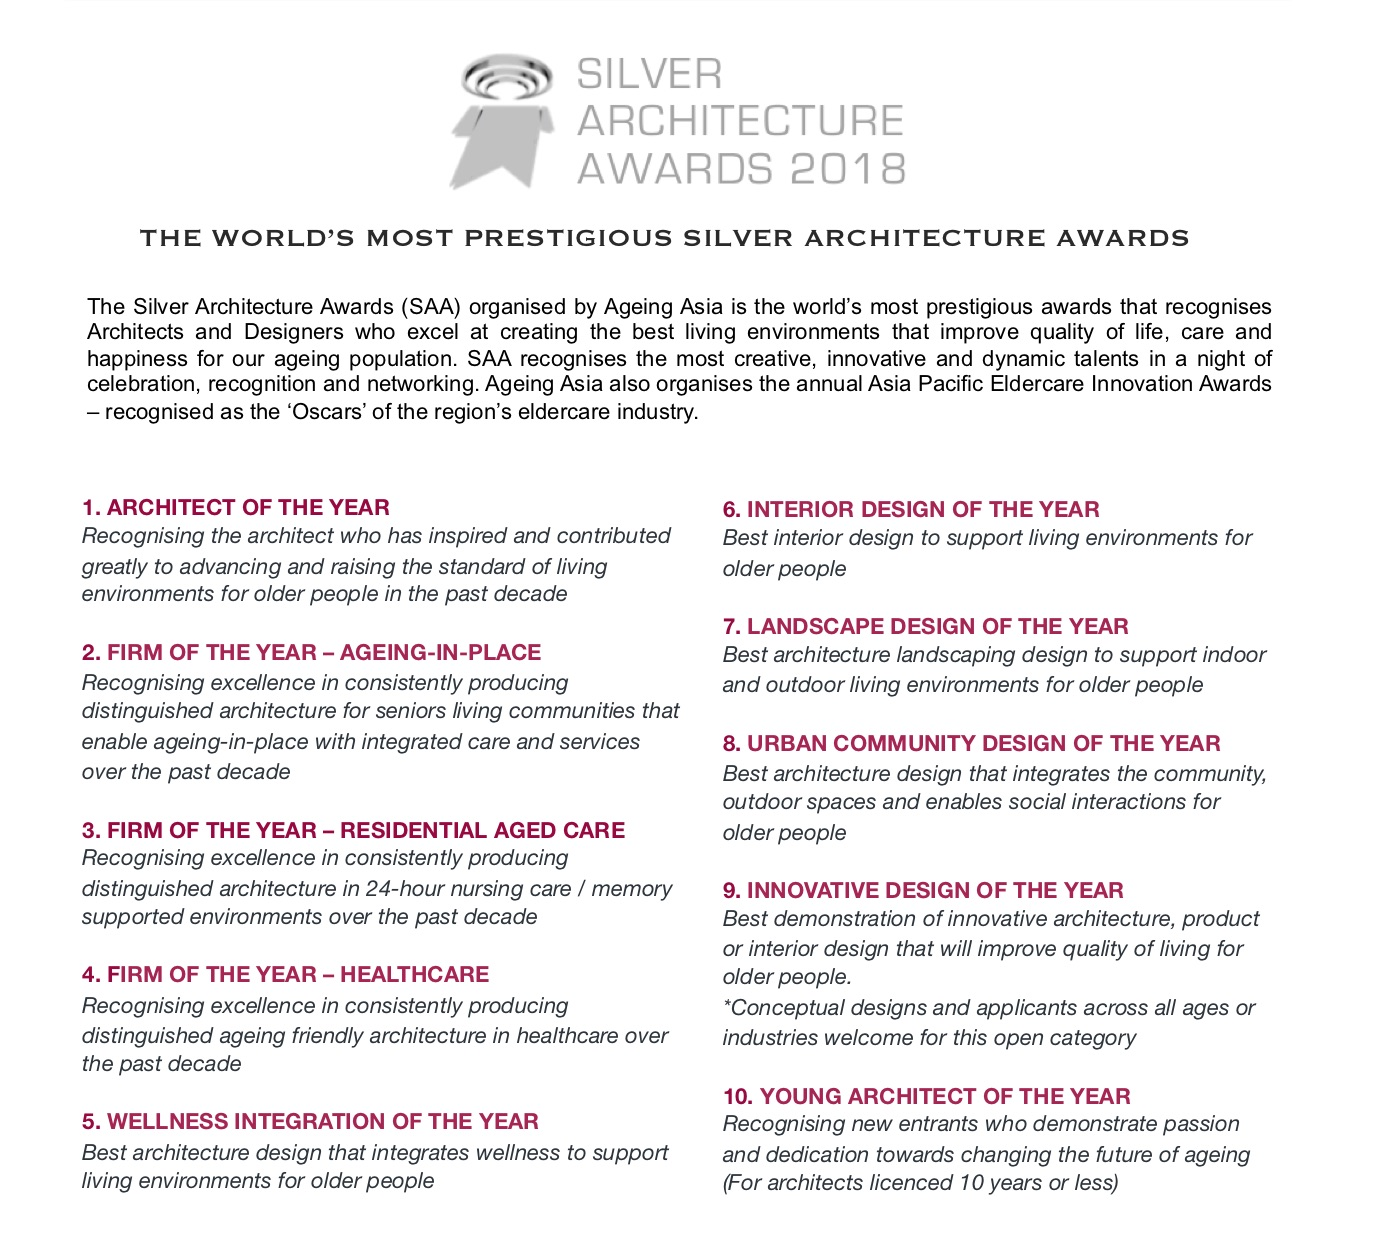 Silver architecture awards 2018 @ Hong Kong